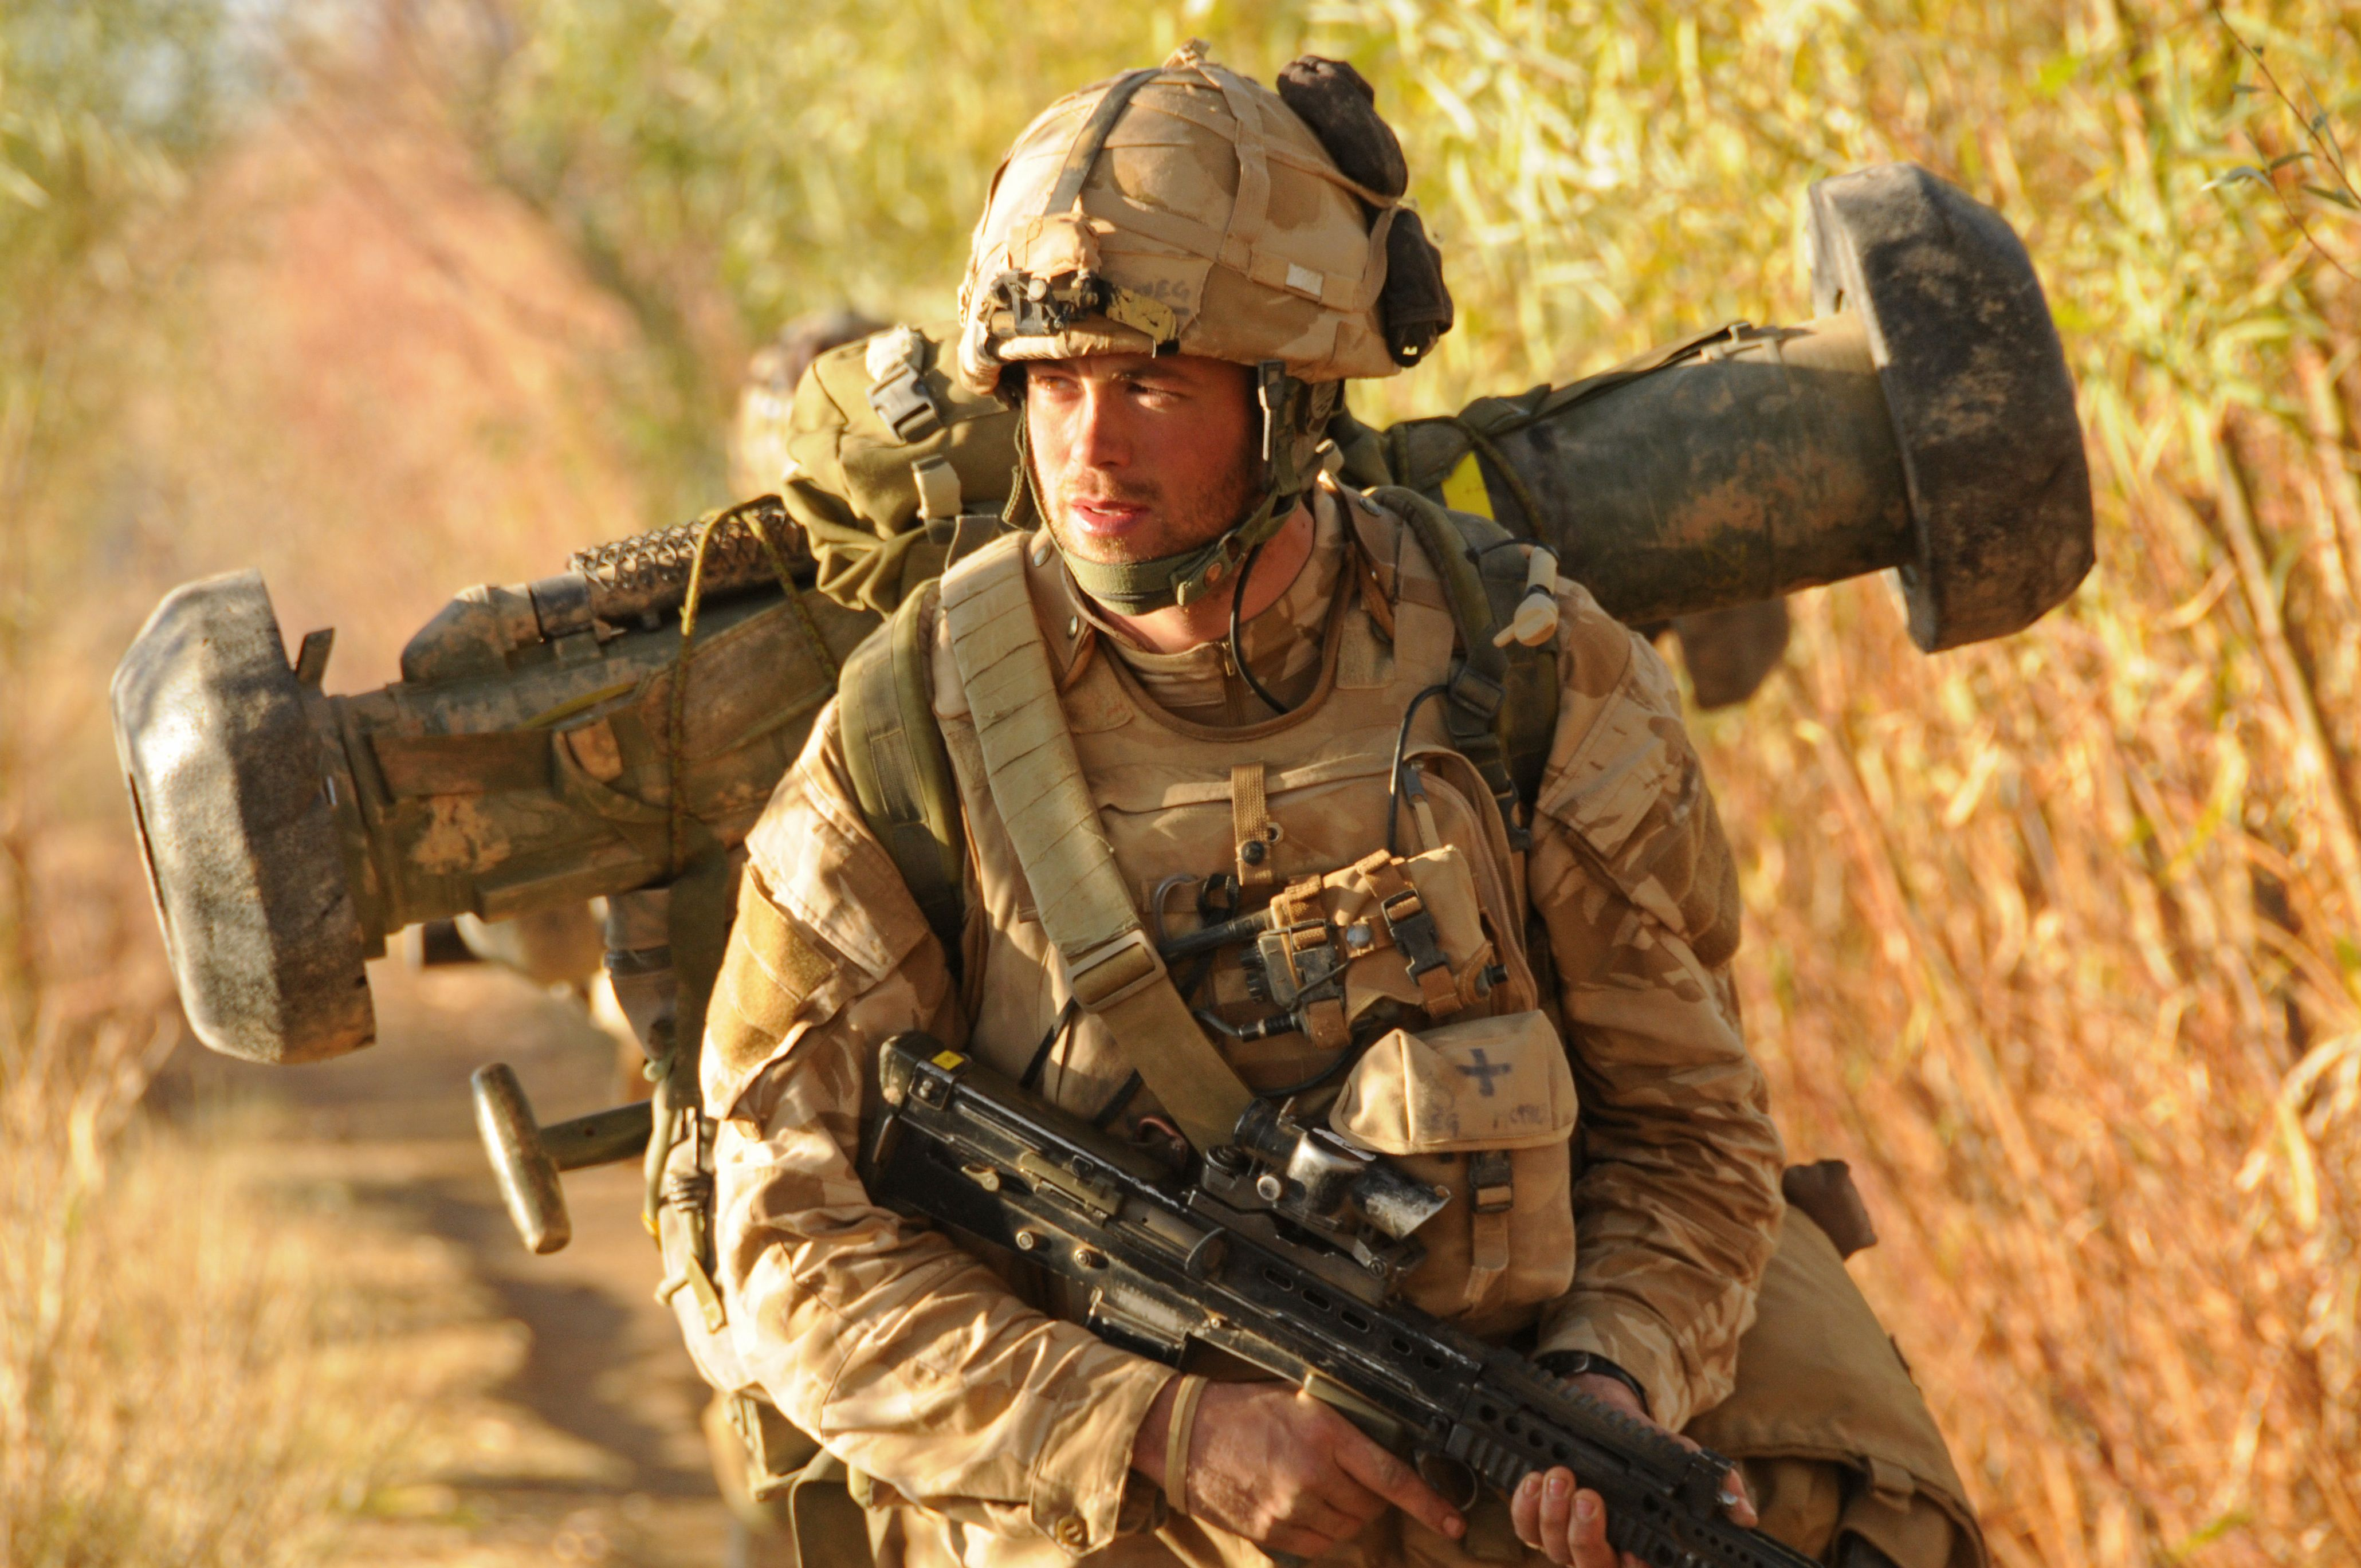 Royal Marines Commando With Javelin Missile Launcher Strapped To His Back During Op Sond Chara